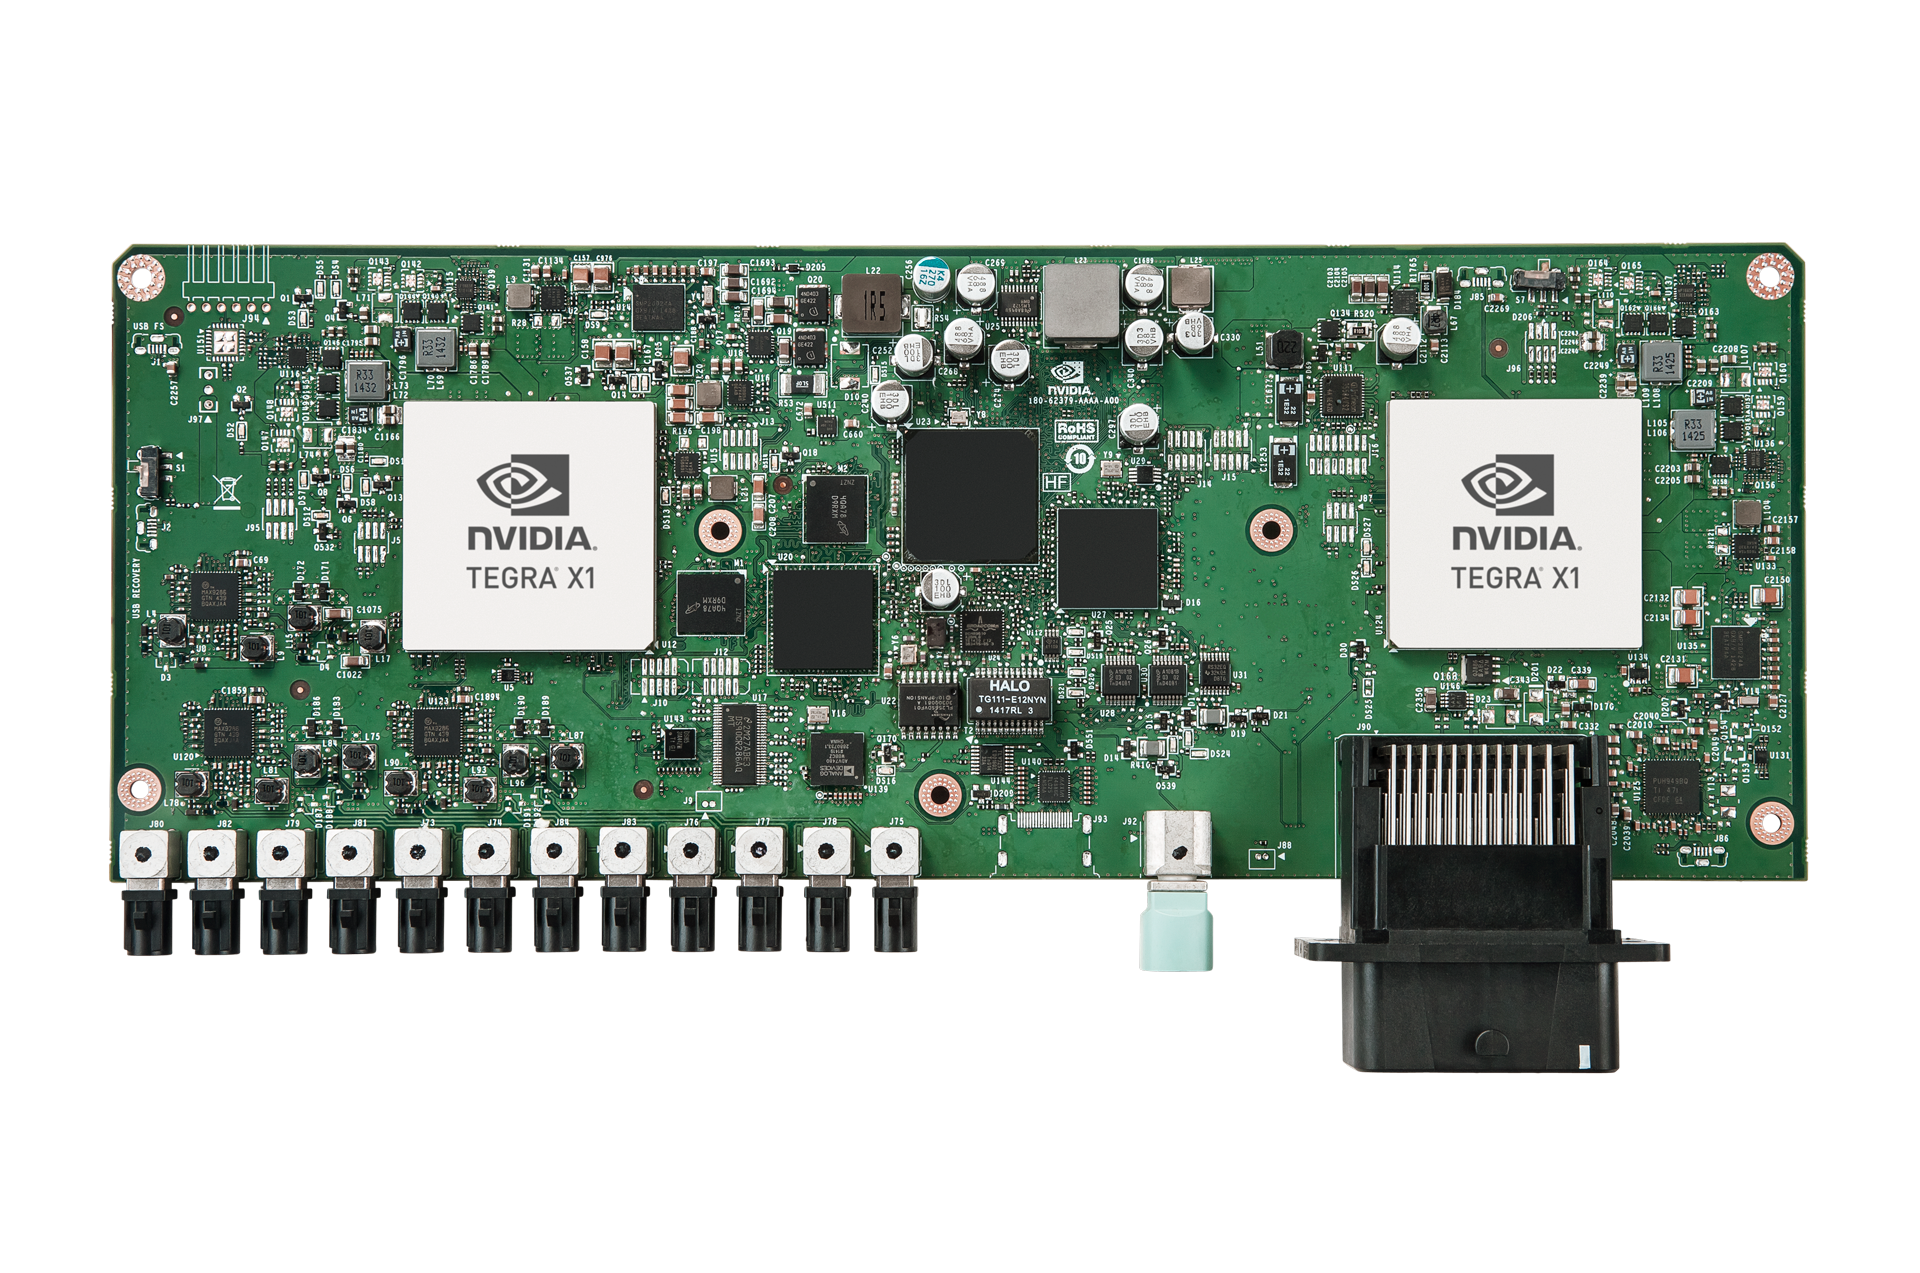 Figure 1 | The NVIDIA Drive PX platform features two Tegra X1 processors, each capable of 1 trillion floating-point operations per second for demanding image detection and recognition tasks in advanced driver assistance systems (ADAS).